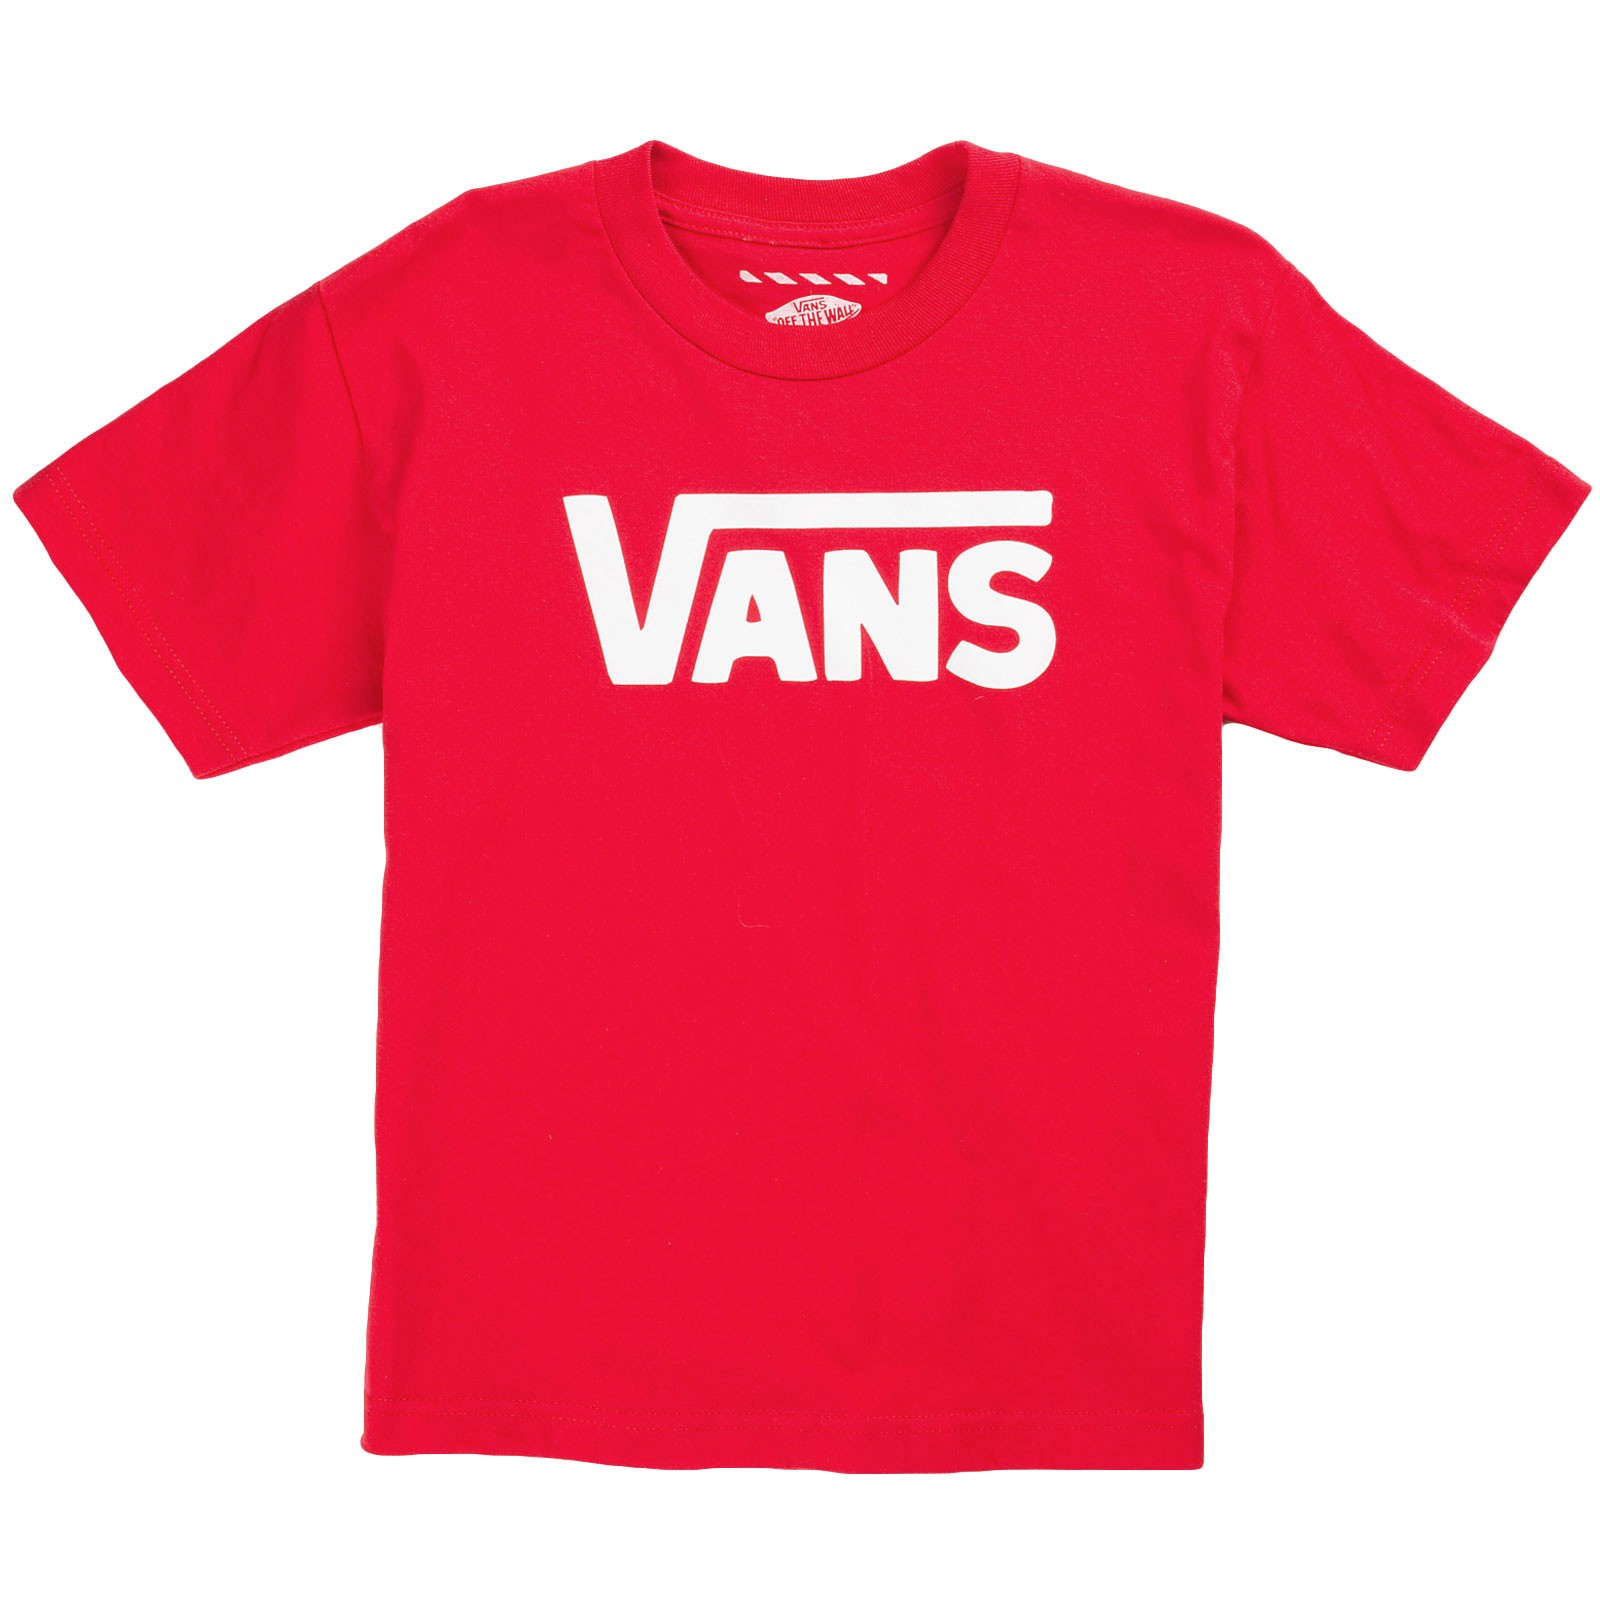 Vans Classic Youth T-Shirt - Red / White